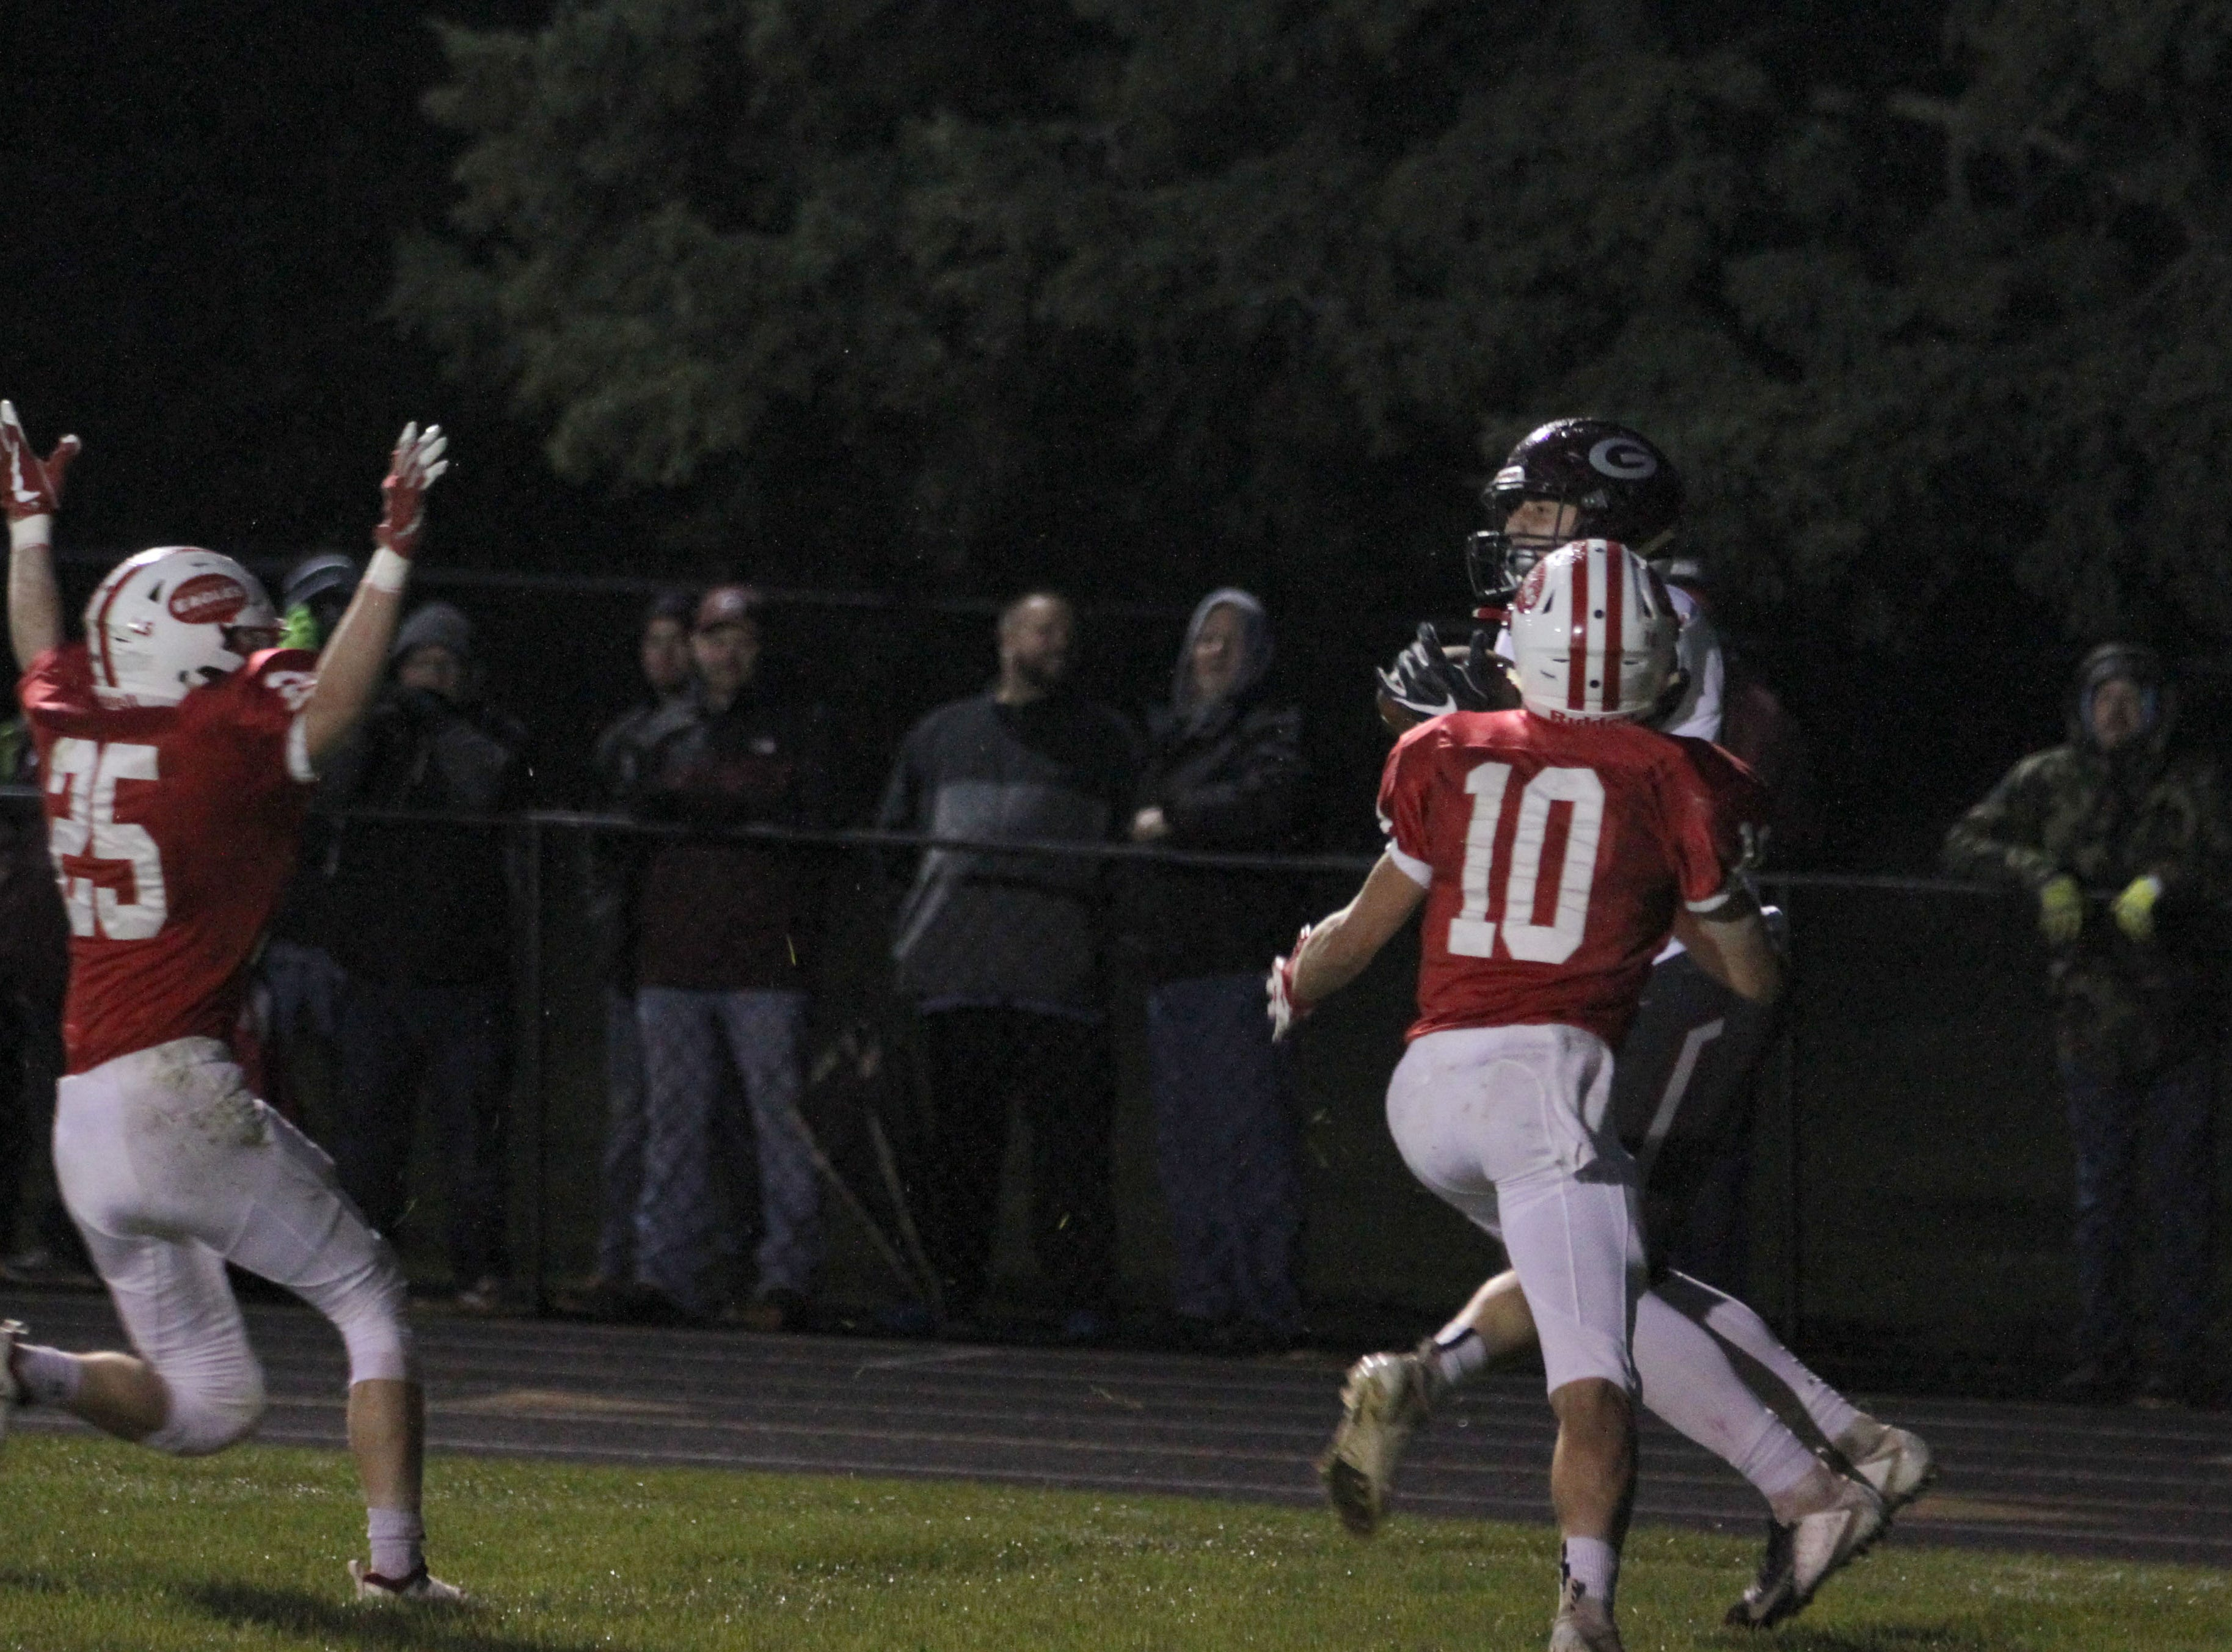 Genoa's Nathan Lewis hauls the pass in for a touchdown against Eastwood.